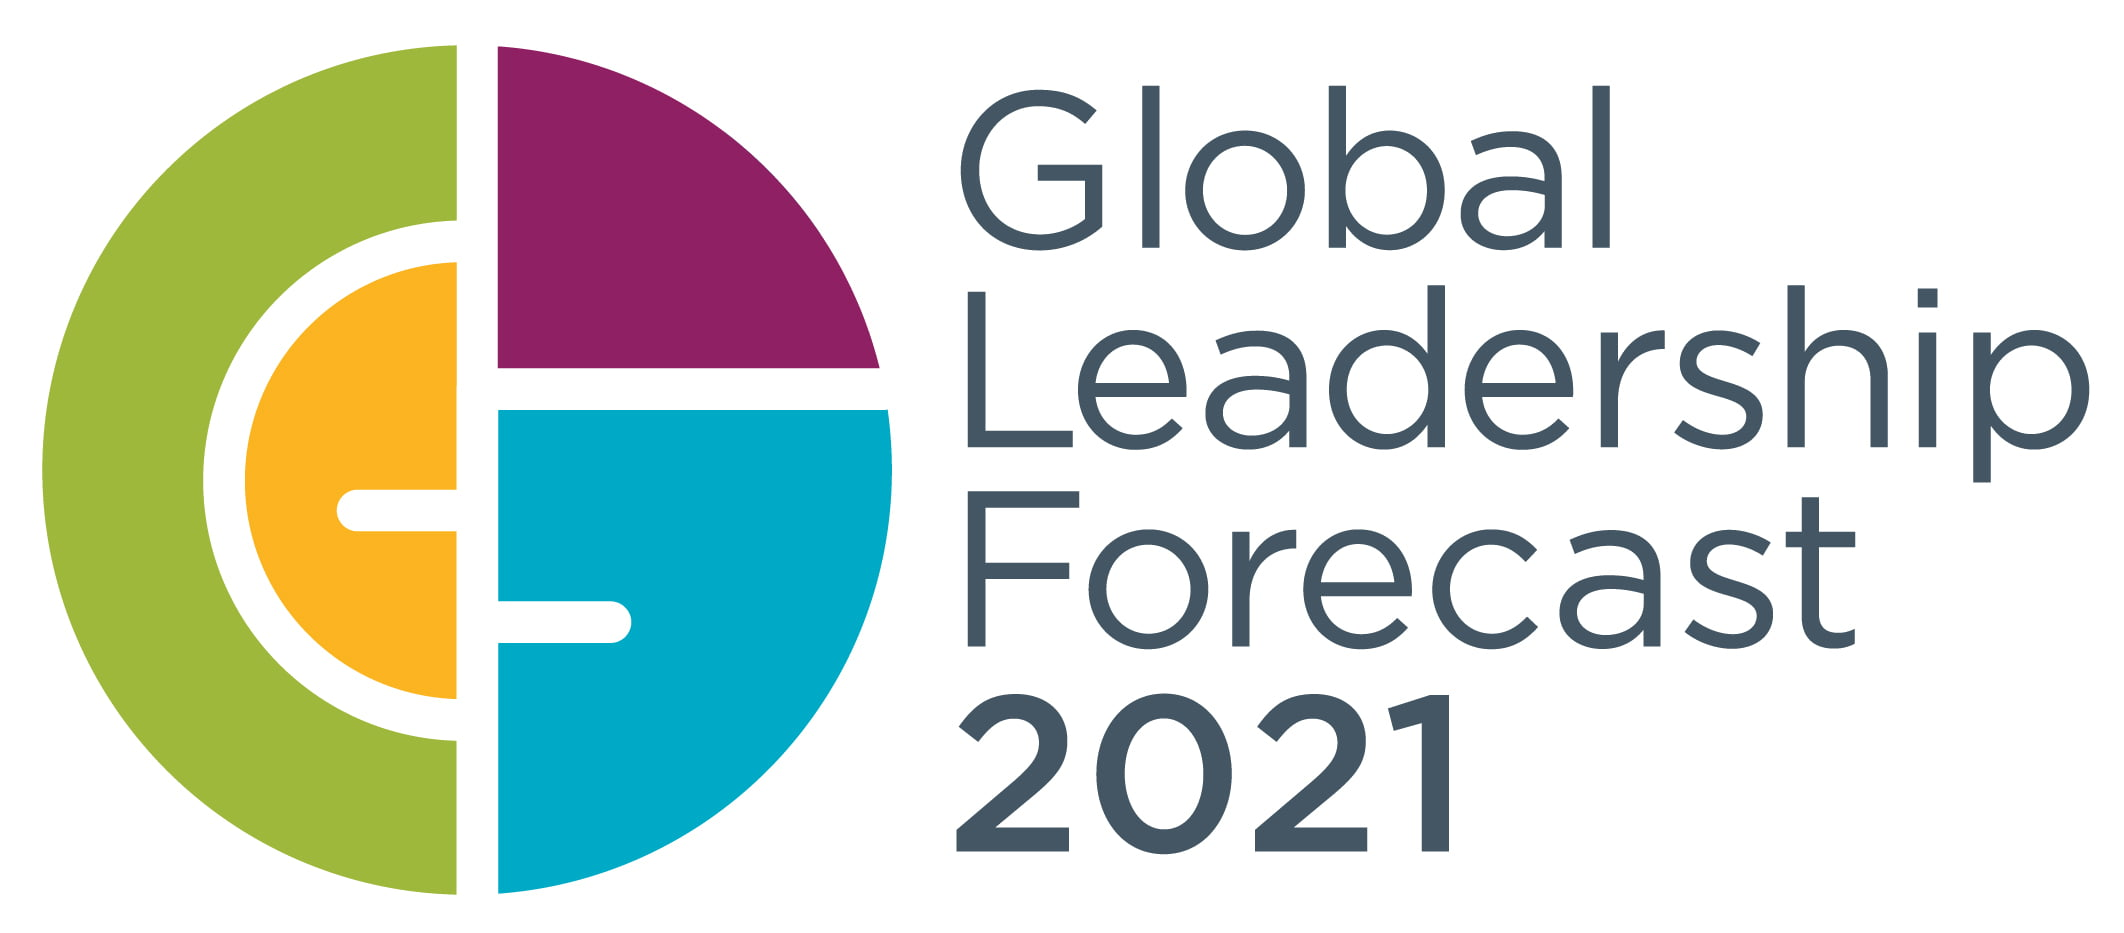 DDI and HR Analyst Josh Bersin Partner to Conduct the Global Leadership Forecast 2021, the Largest Worldwide Leadership Survey